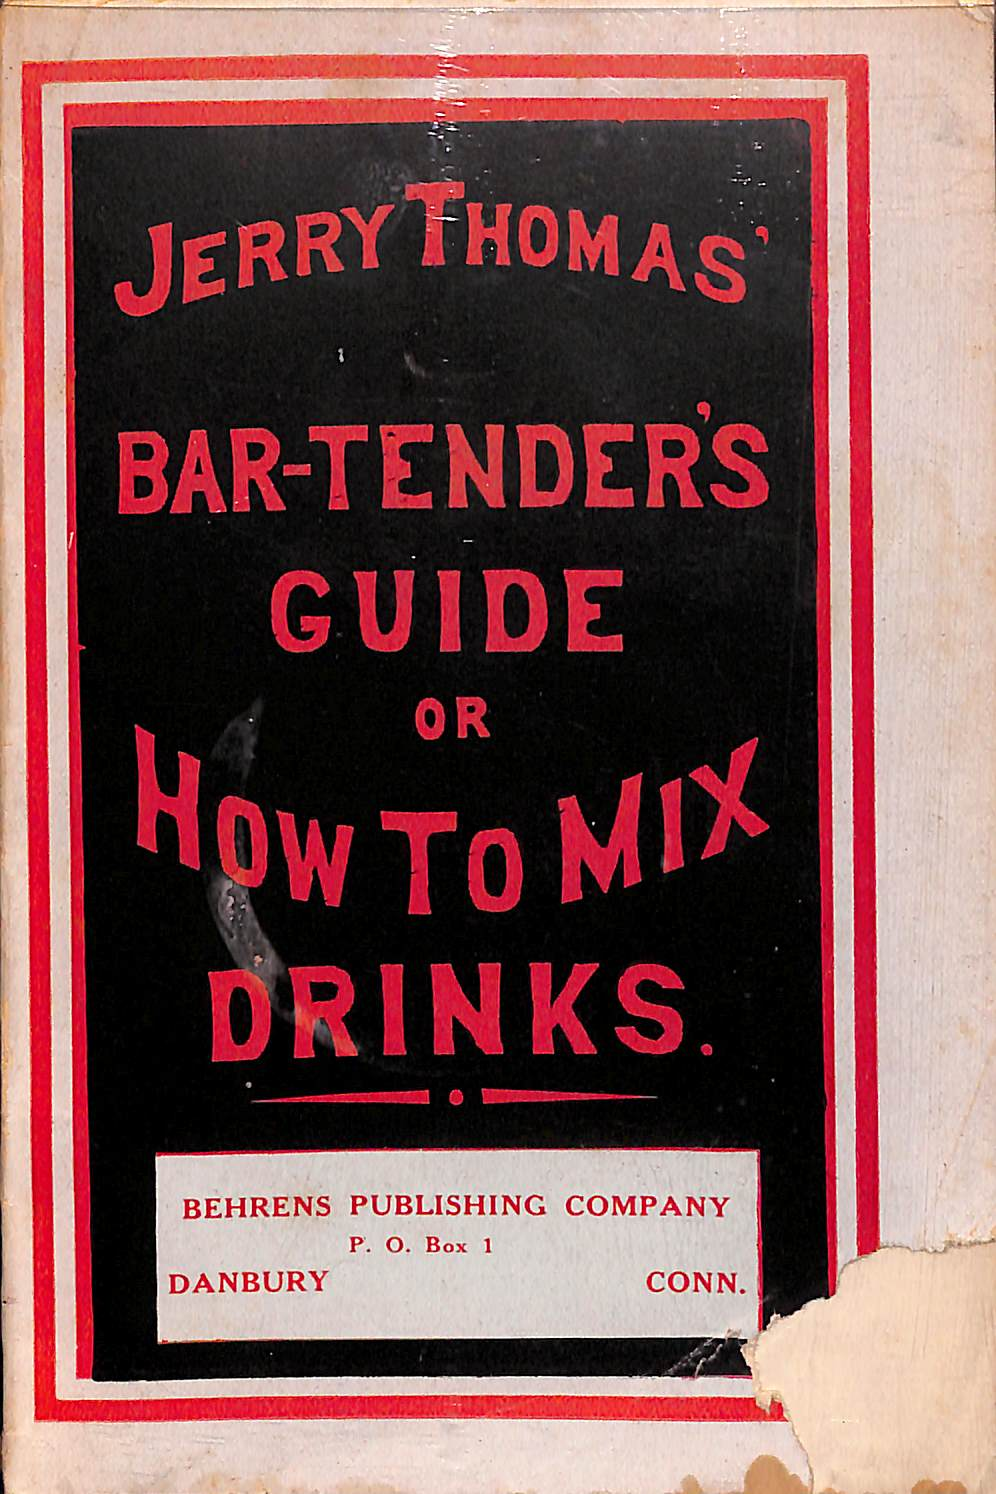 Bar-Tenders Guide Or How To Mix Drinks